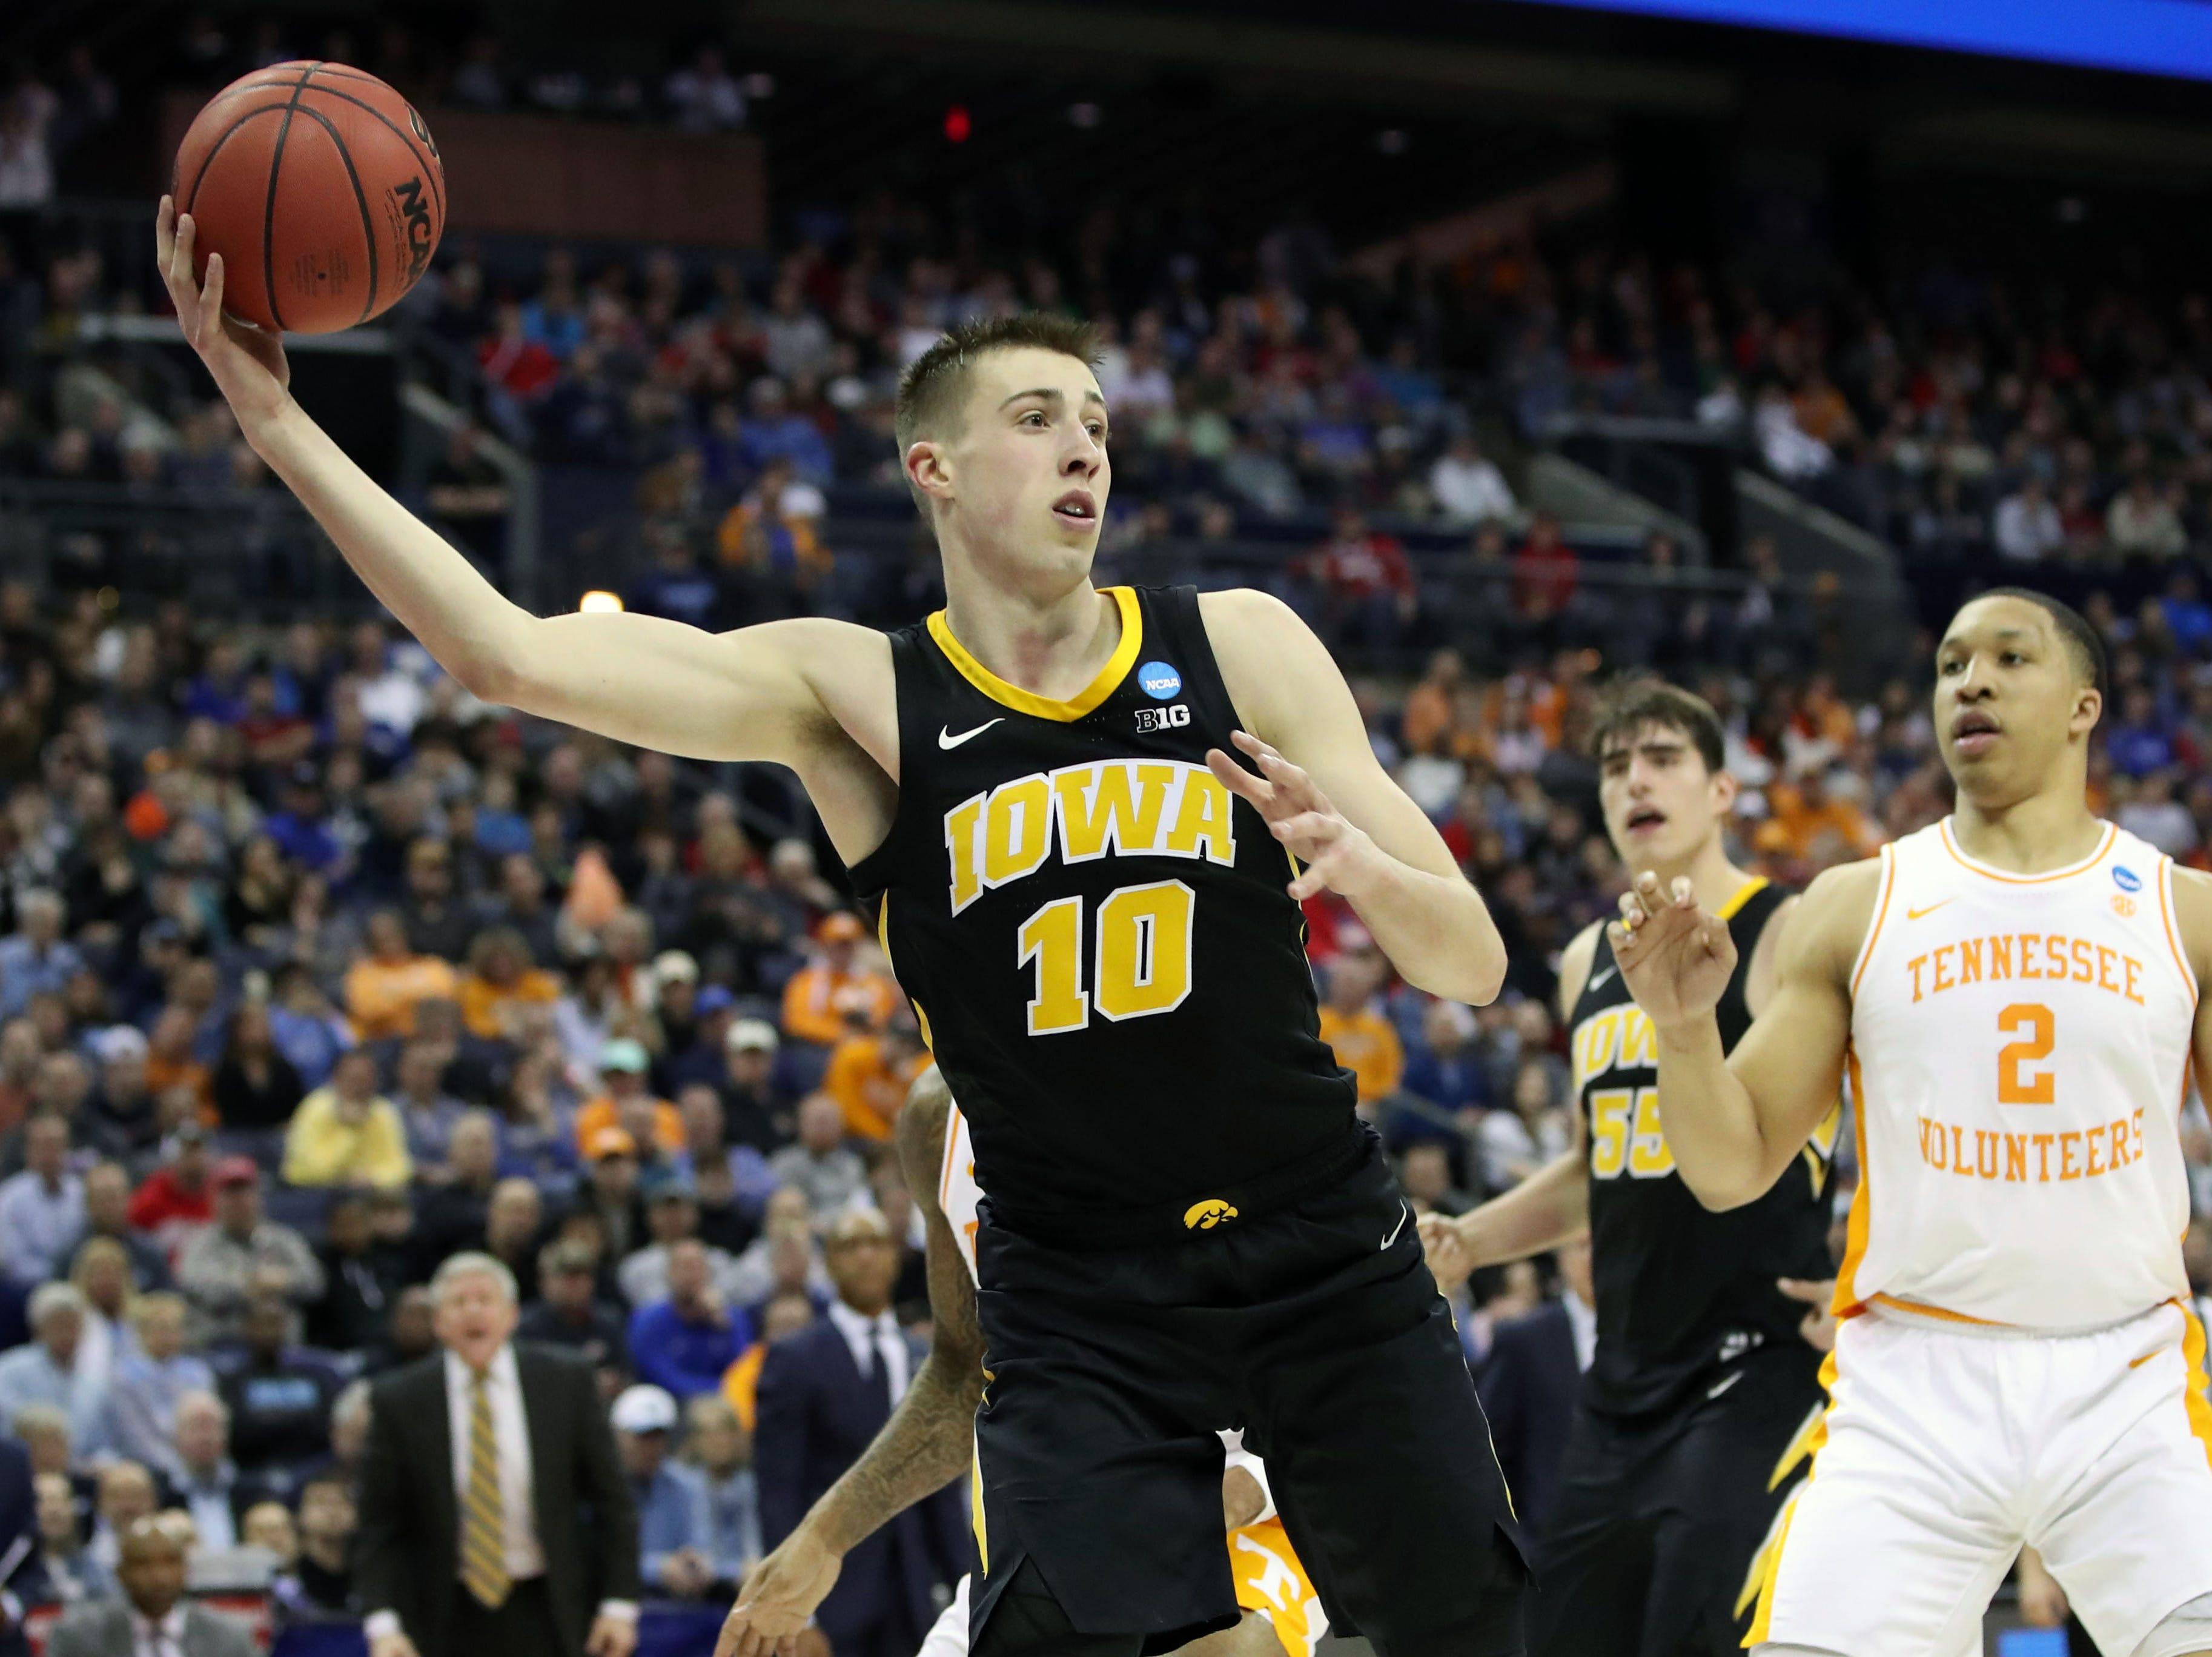 Iowa Hawkeyes guard Joe Wieskamp (10) looks to pass the ball in the second half against the Tennessee Volunteers in the second round of the 2019 NCAA Tournament at Nationwide Arena.